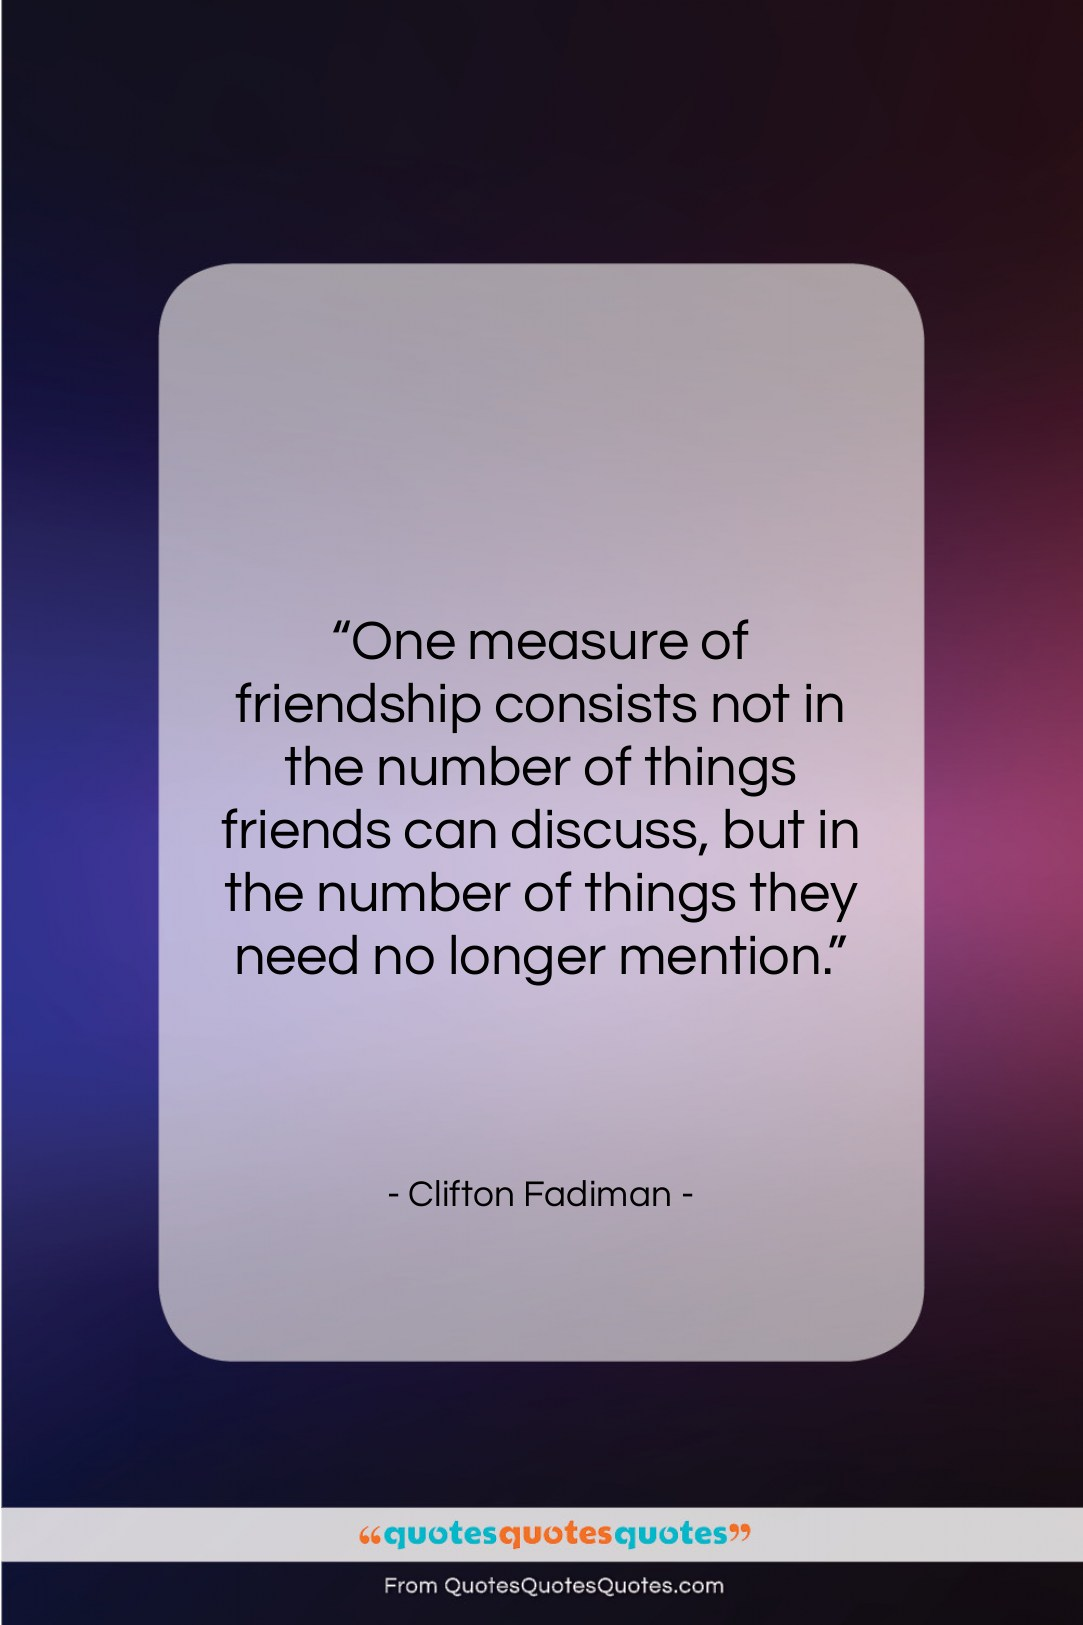 """Clifton Fadiman quote: """"One measure of friendship consists not in…""""- at QuotesQuotesQuotes.com"""